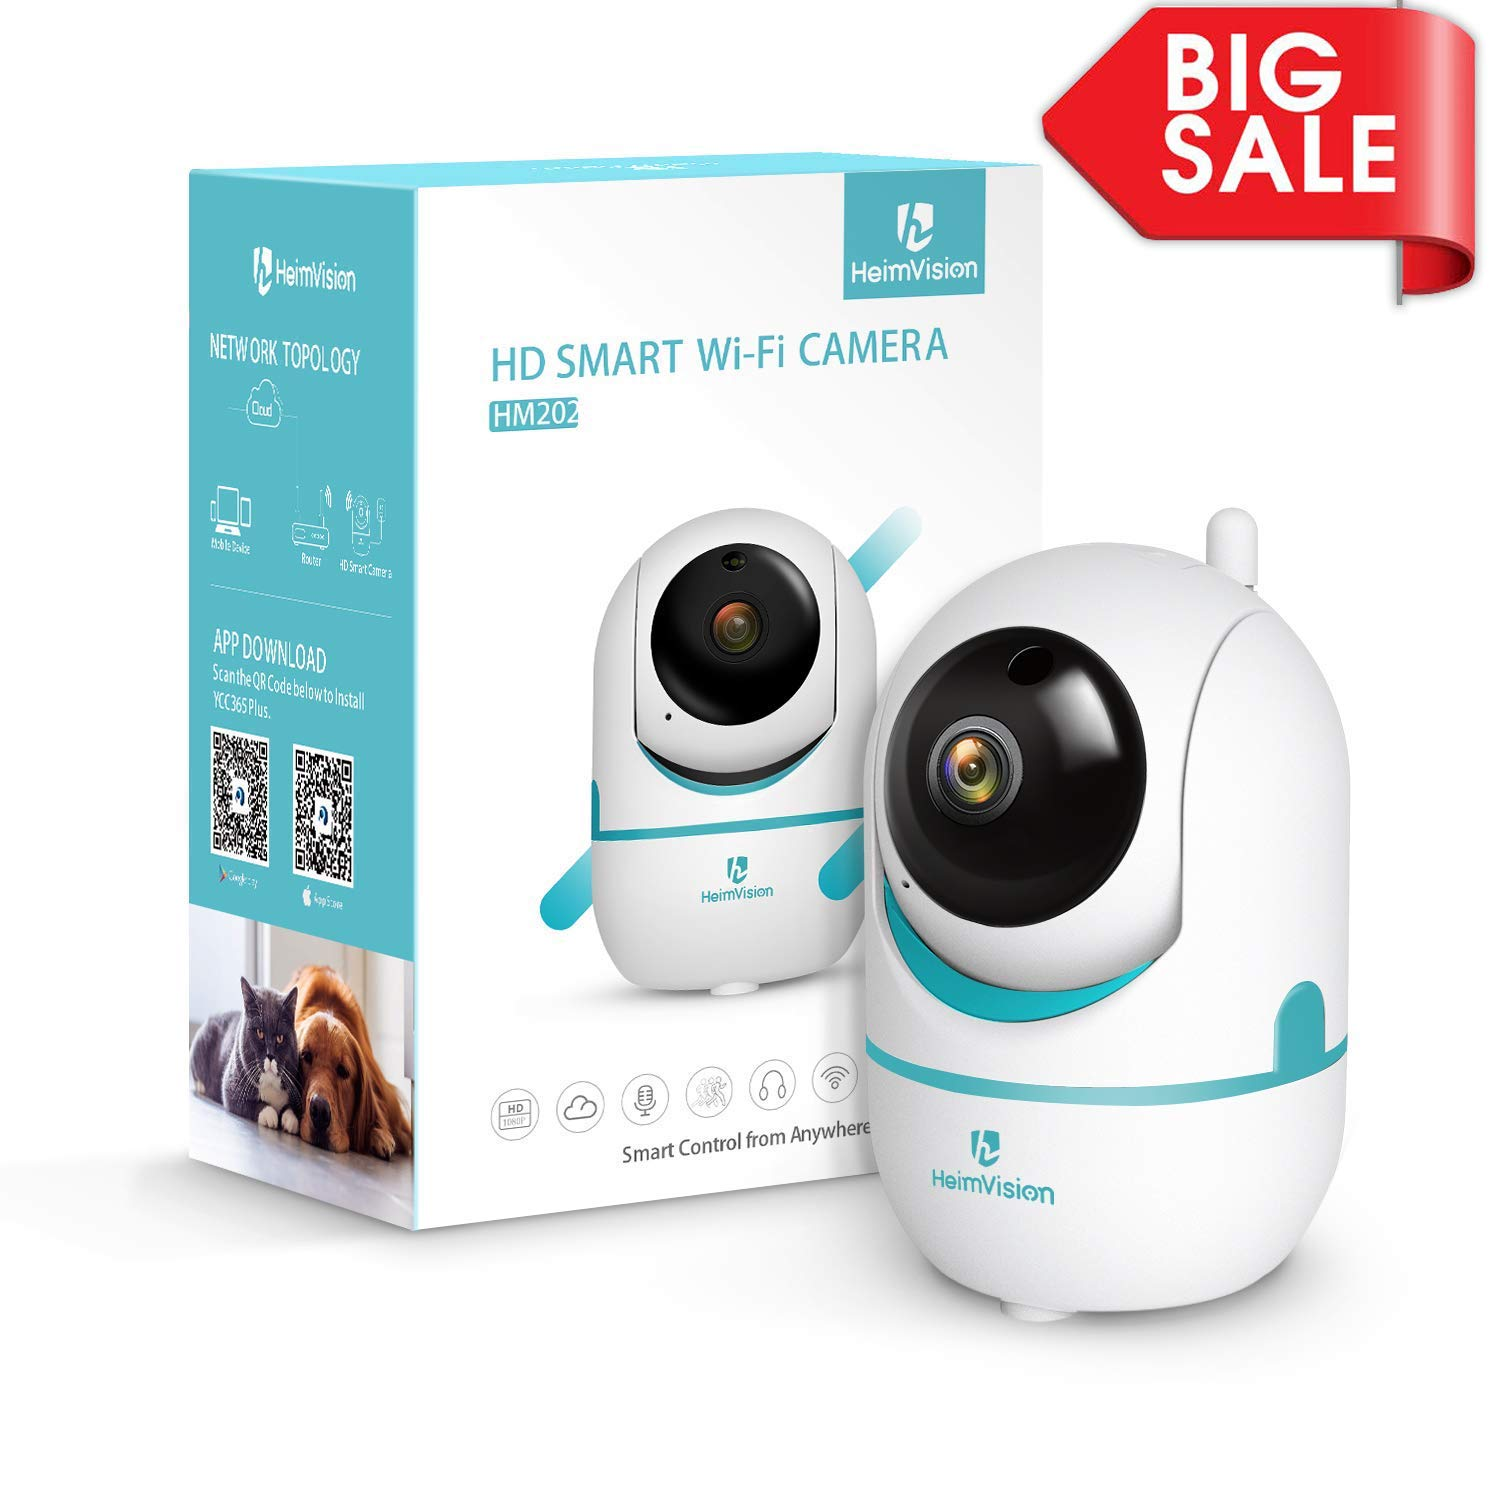 Baby Monitors Reasonable 1080p Hd Network Camera Two-way Audio Wireless Network Camera Night Vision Motion Detection Camera Robot Pet Baby Monitor Comfortable Feel